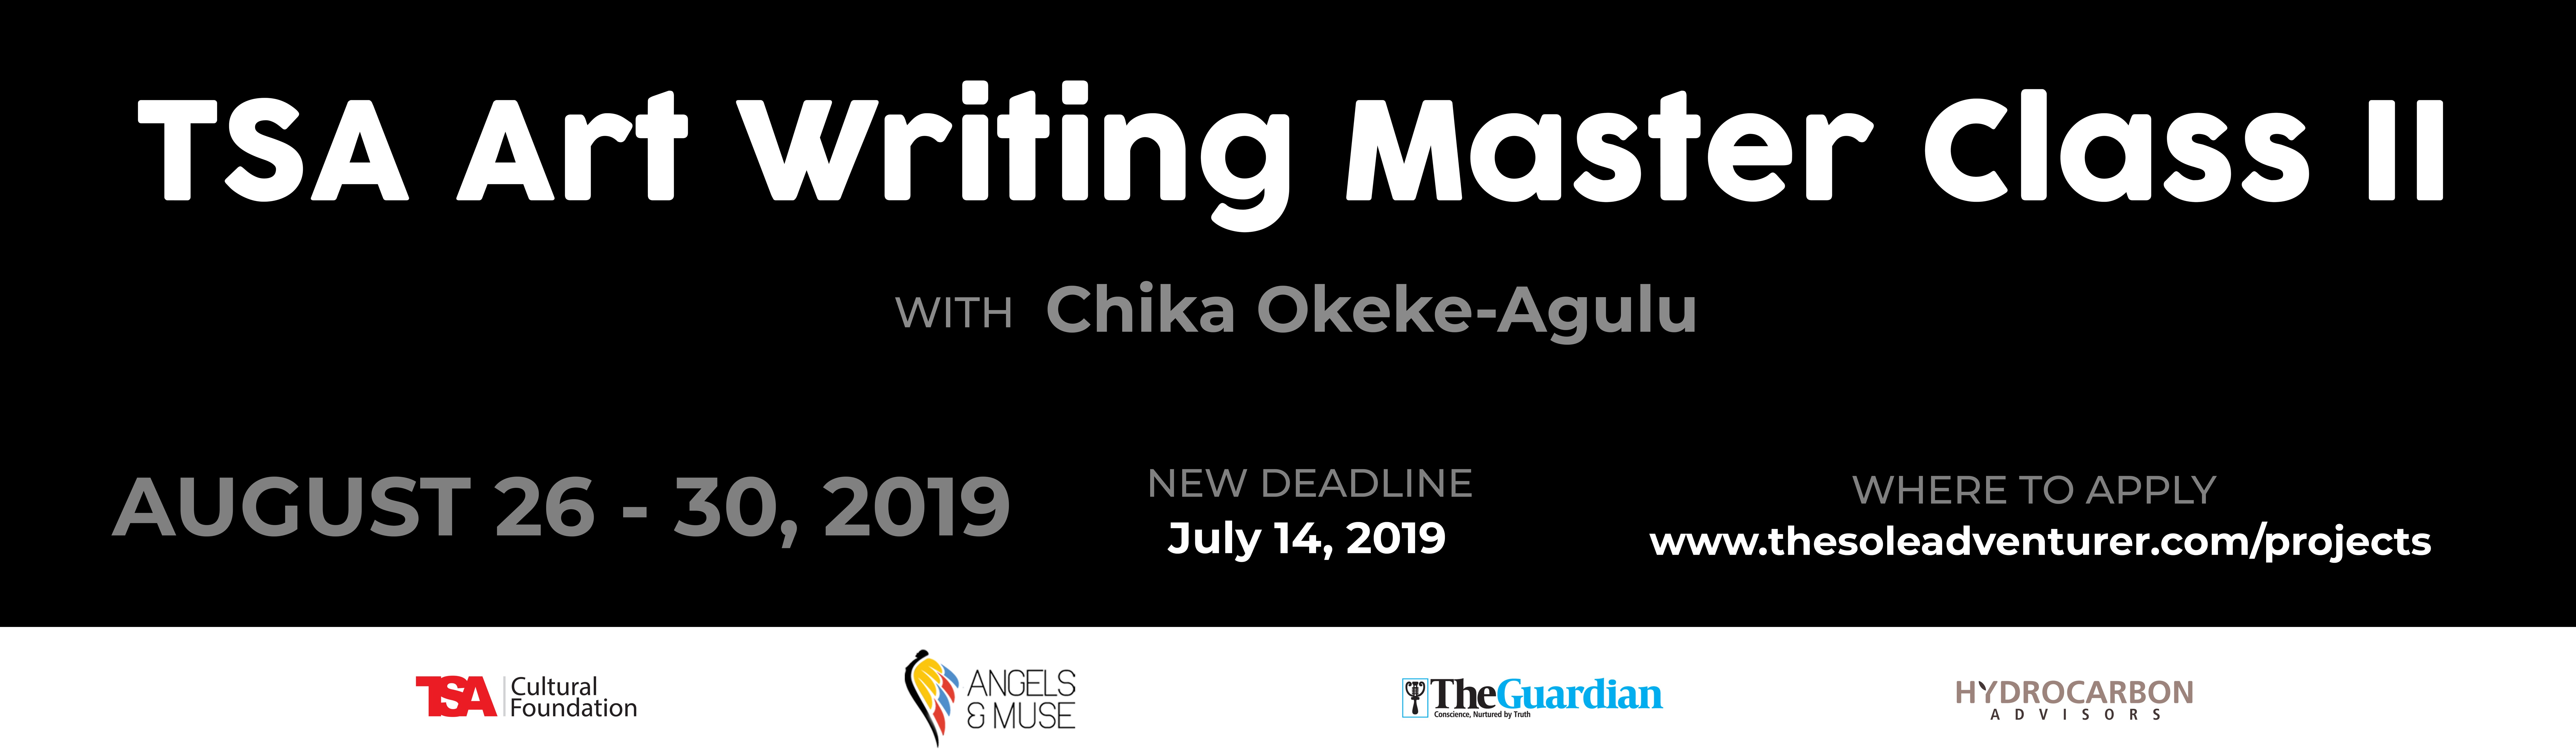 TSA Art Writing master class II with Prof. Chika Okeke Agulu